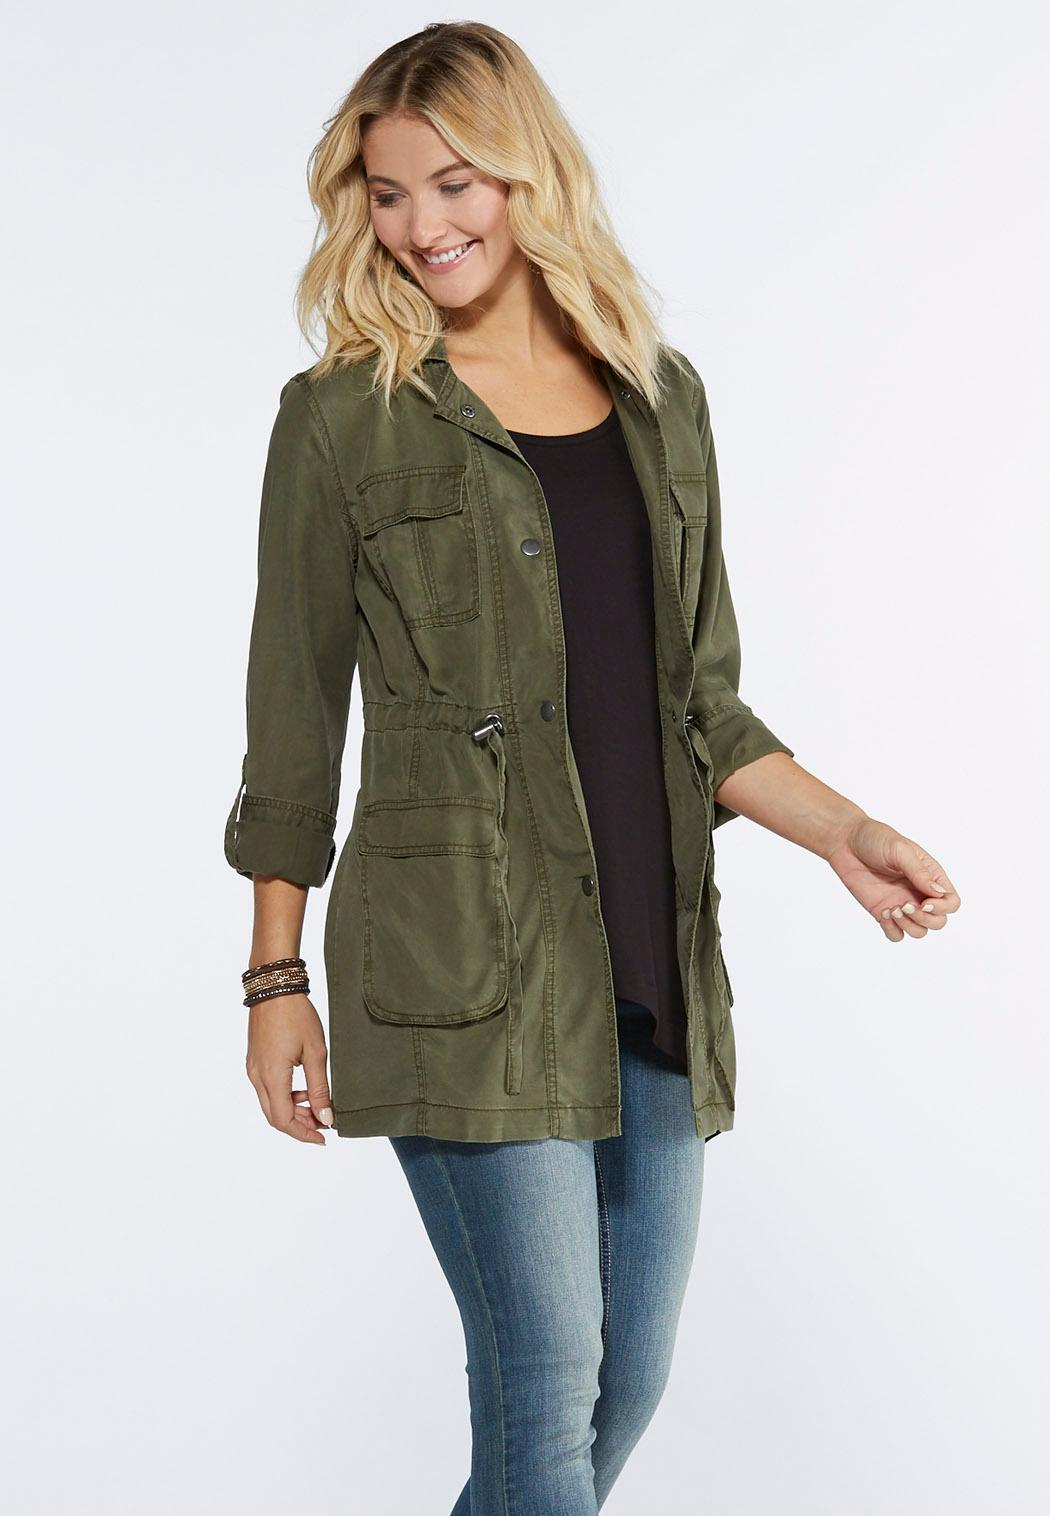 Cinched Waist Utility Jacket-Plus Fashion Jackets Cato ...